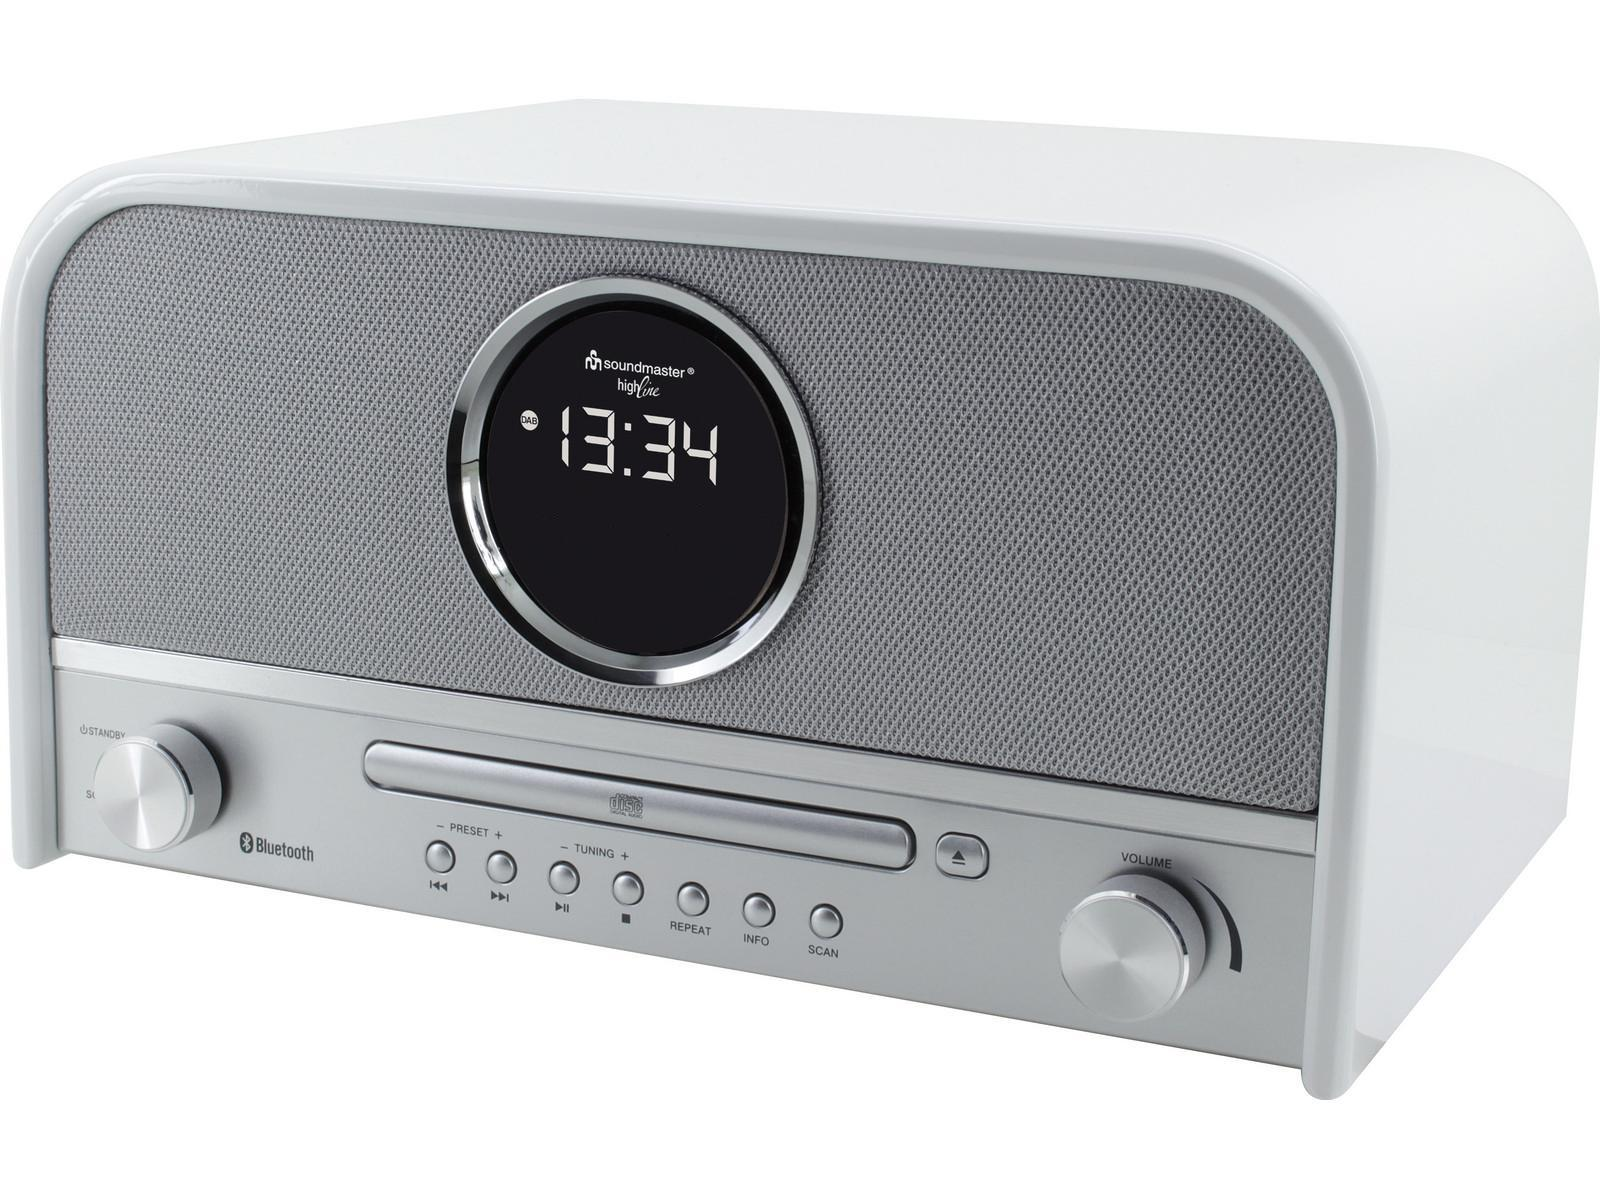 This soundmaster NR850 Retro Bluetooth Speaker with FM / DAB Radio & CD Player, in Dark Brown or White, is a high quality Retro style audio system that stands out as a striking feature in almost any room in the home.